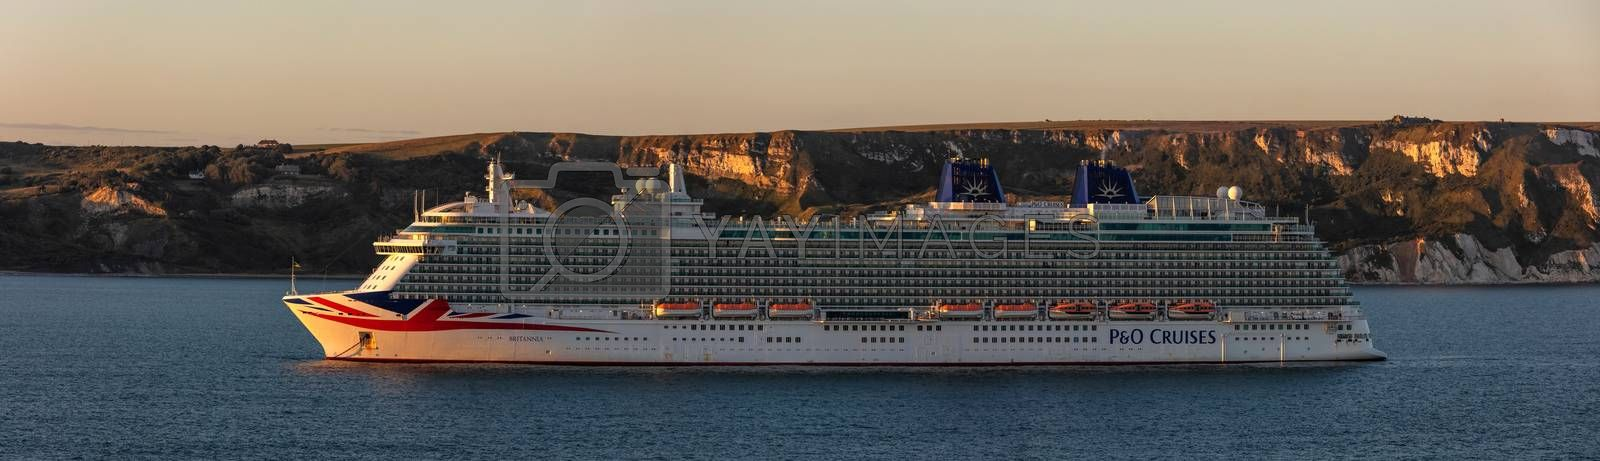 Weymouth Bay, United Kingdom - July 6, 2020: Beautiful panoramic shot of P&O cruise ship Britannia anchored in Weymouth Bay at sunset